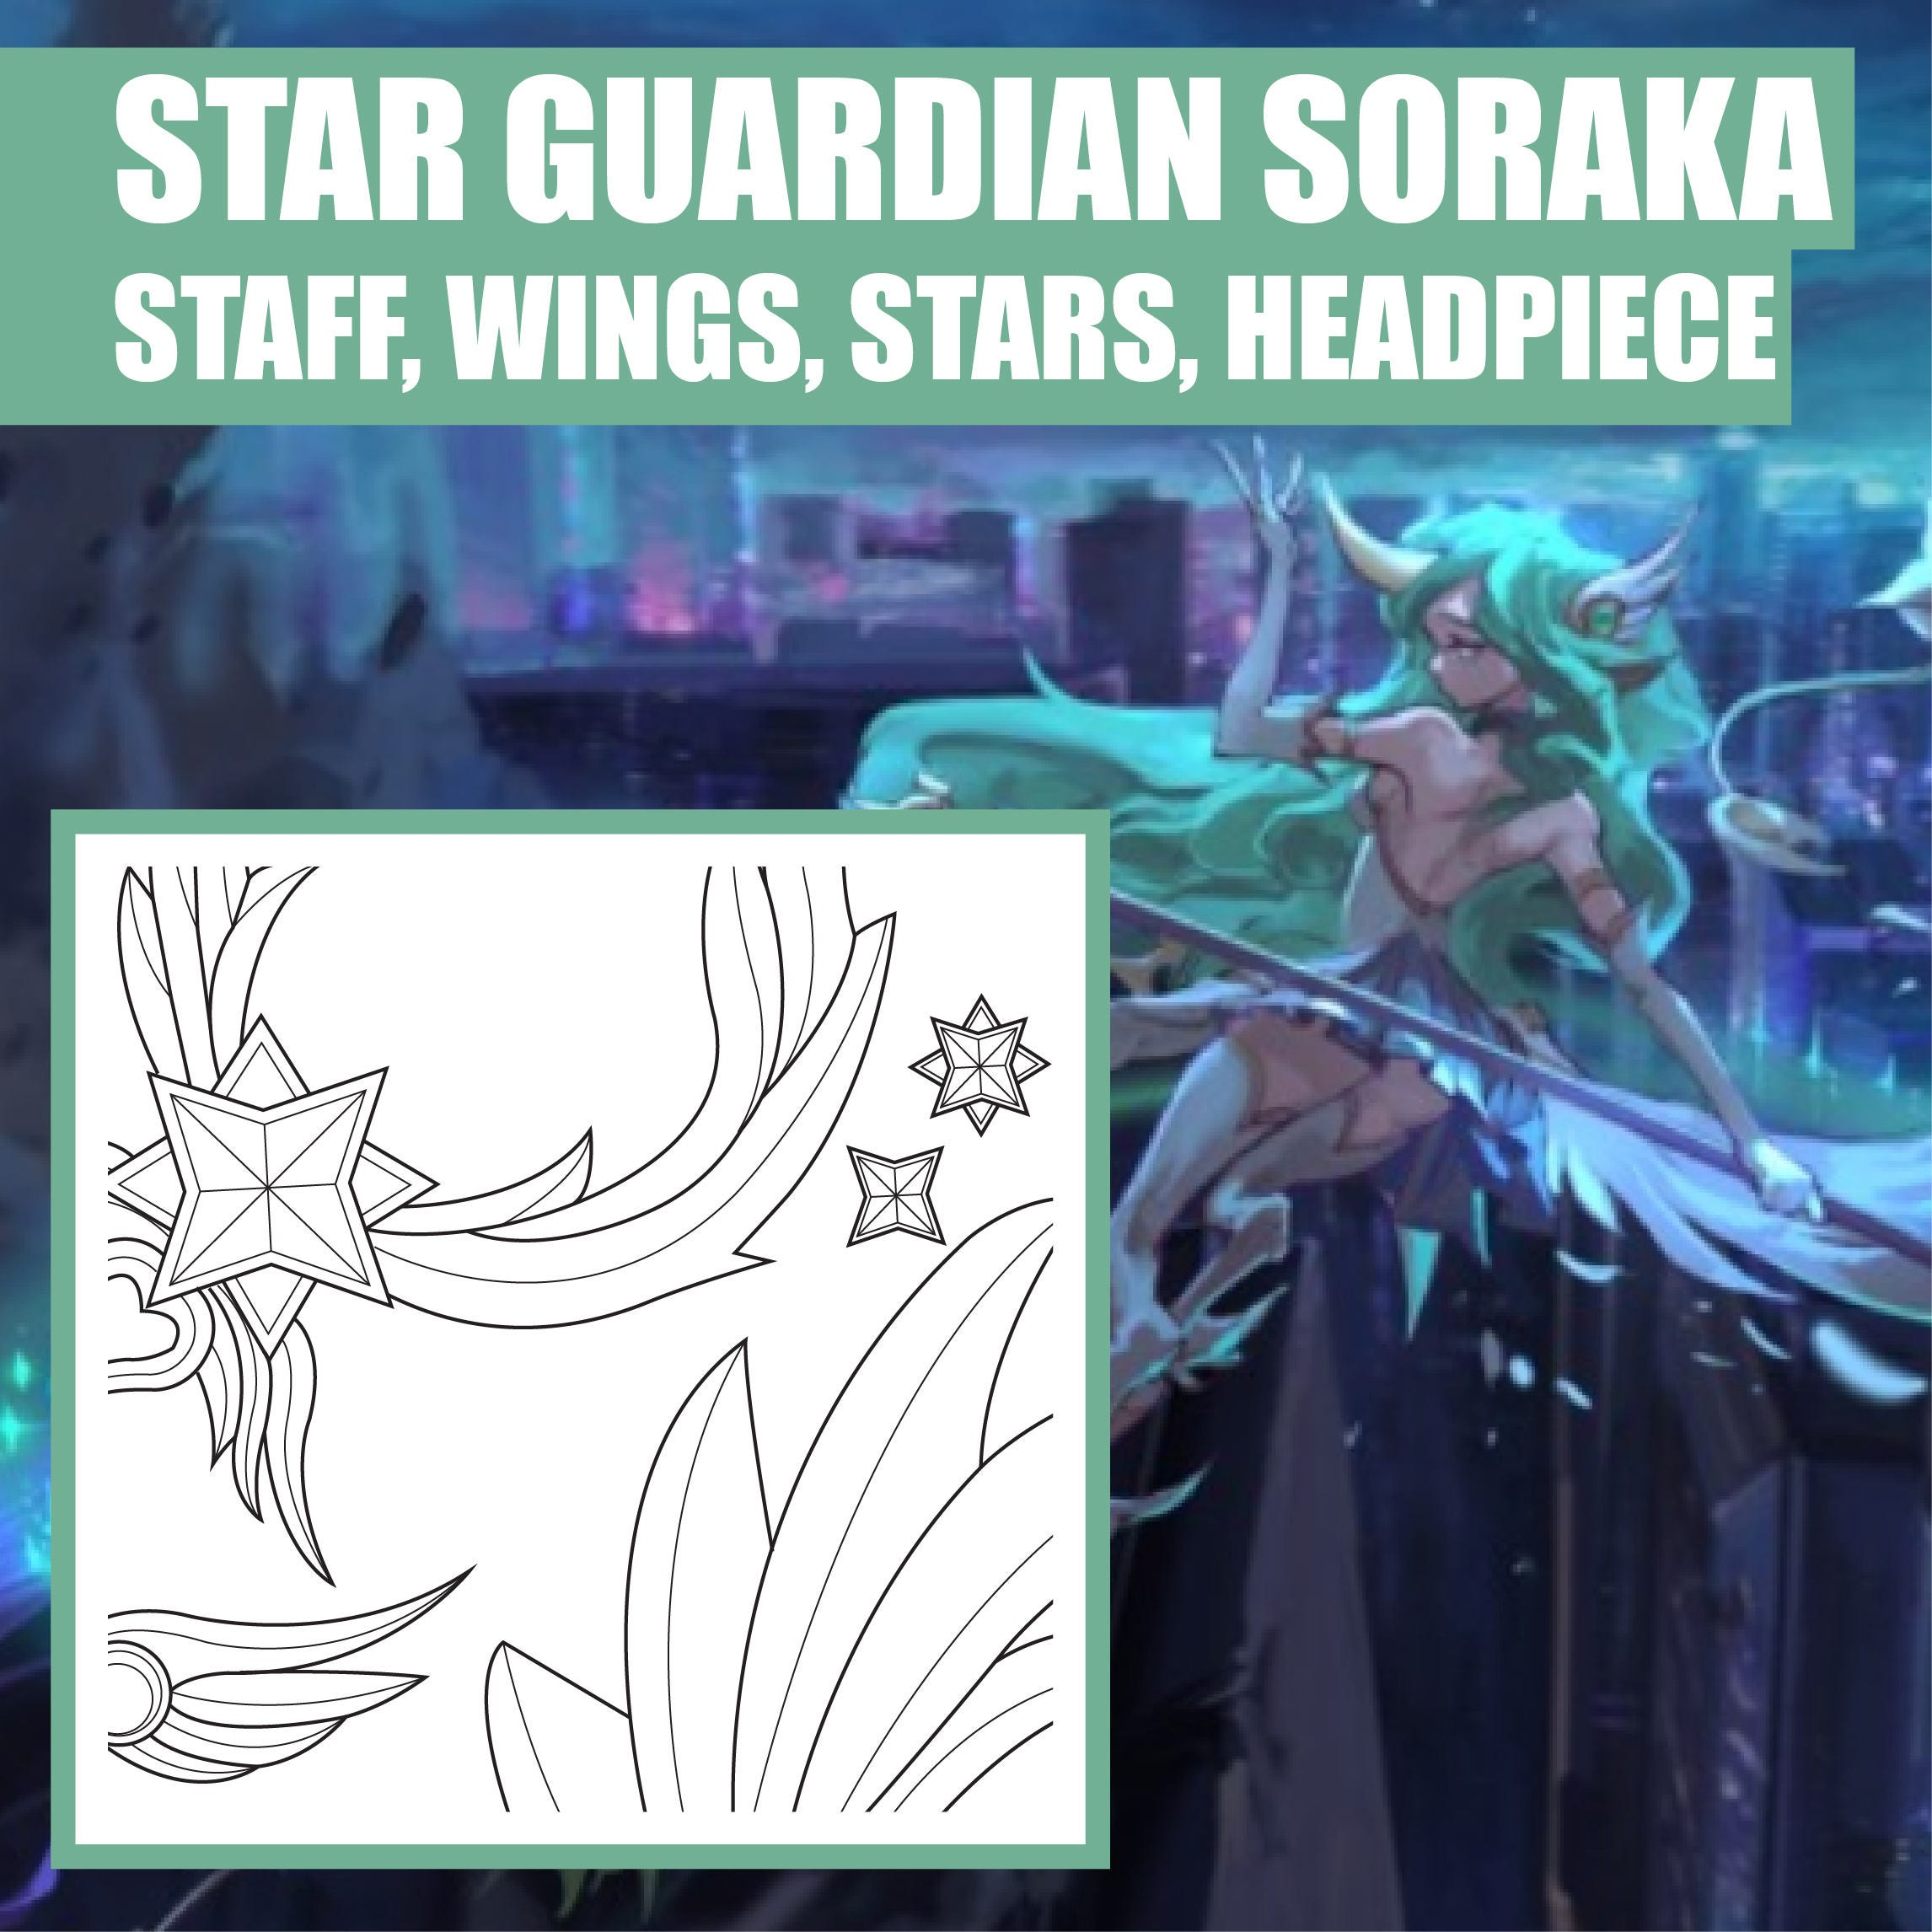 Star Guardian Soraka Staff Wings Stars Headpiece